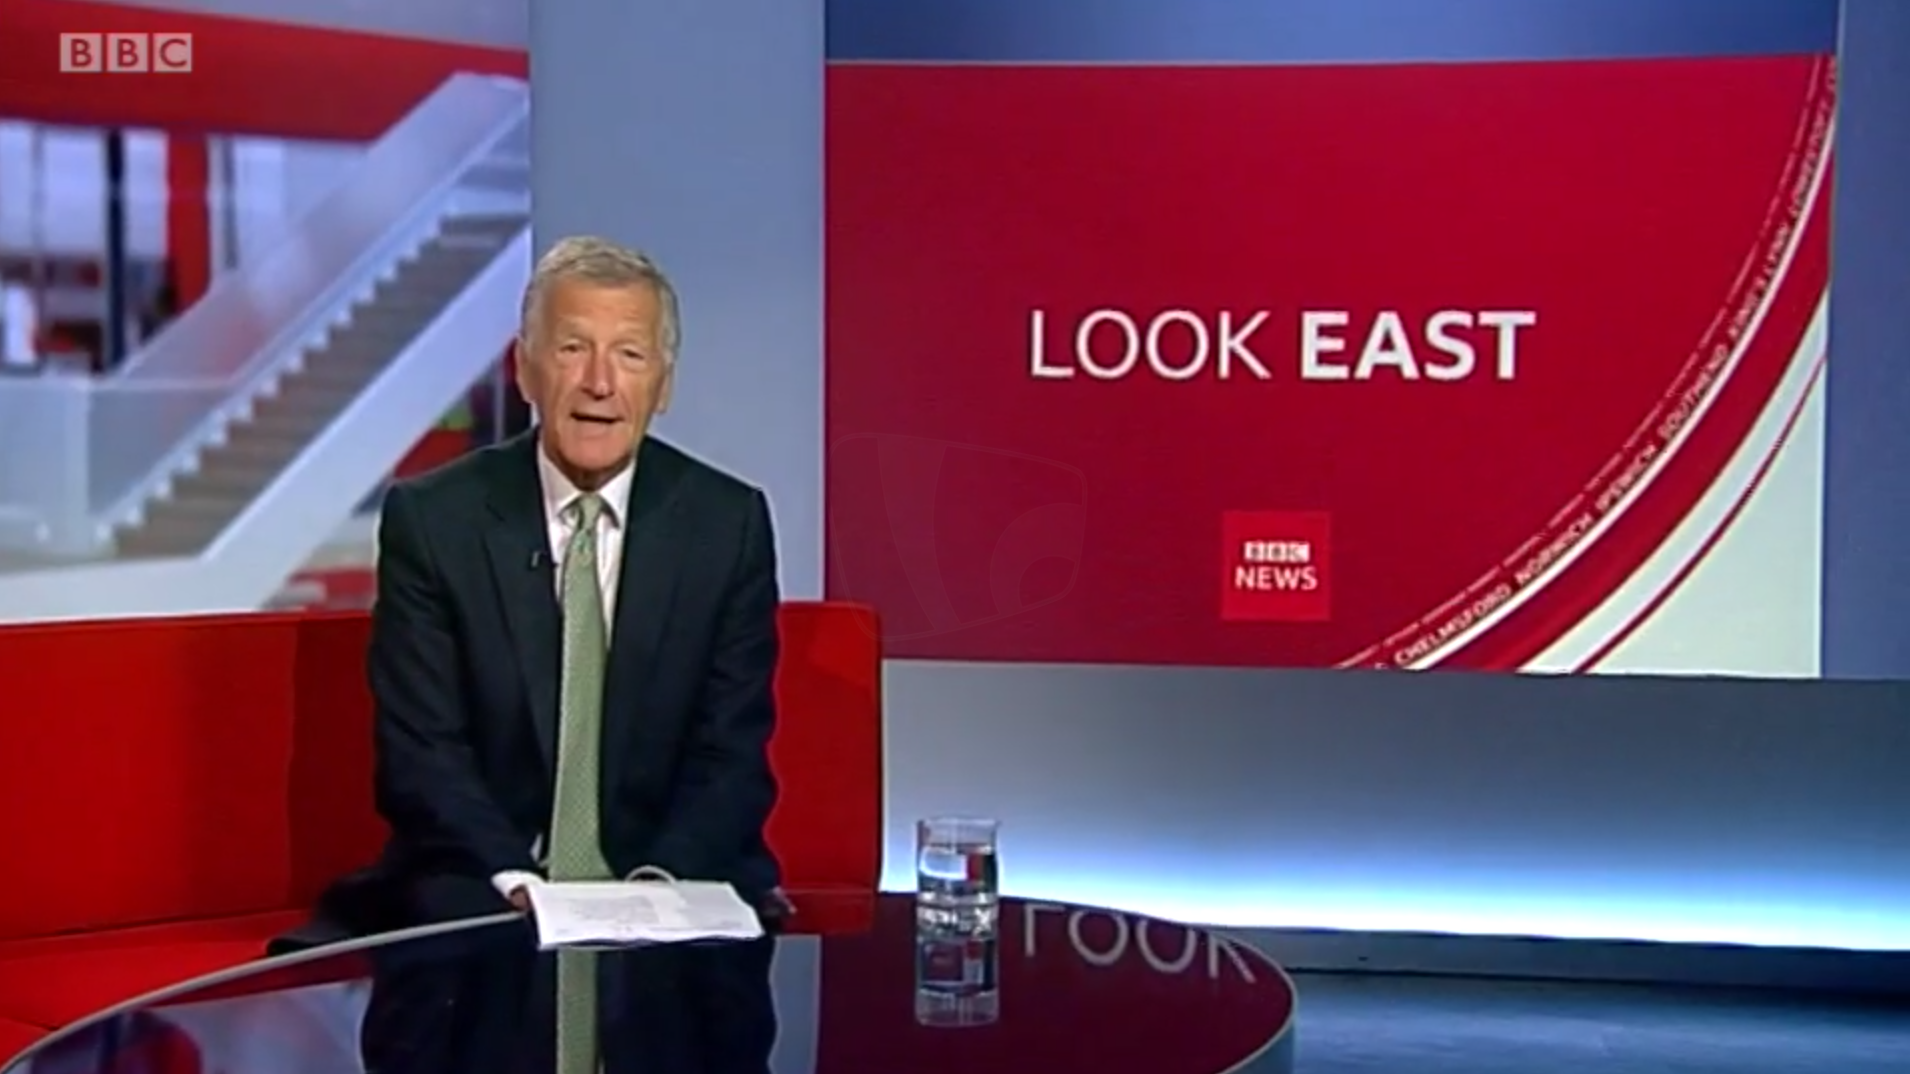 PICTURED: BBC Look East studio presentation. Presenter: Stewart White.